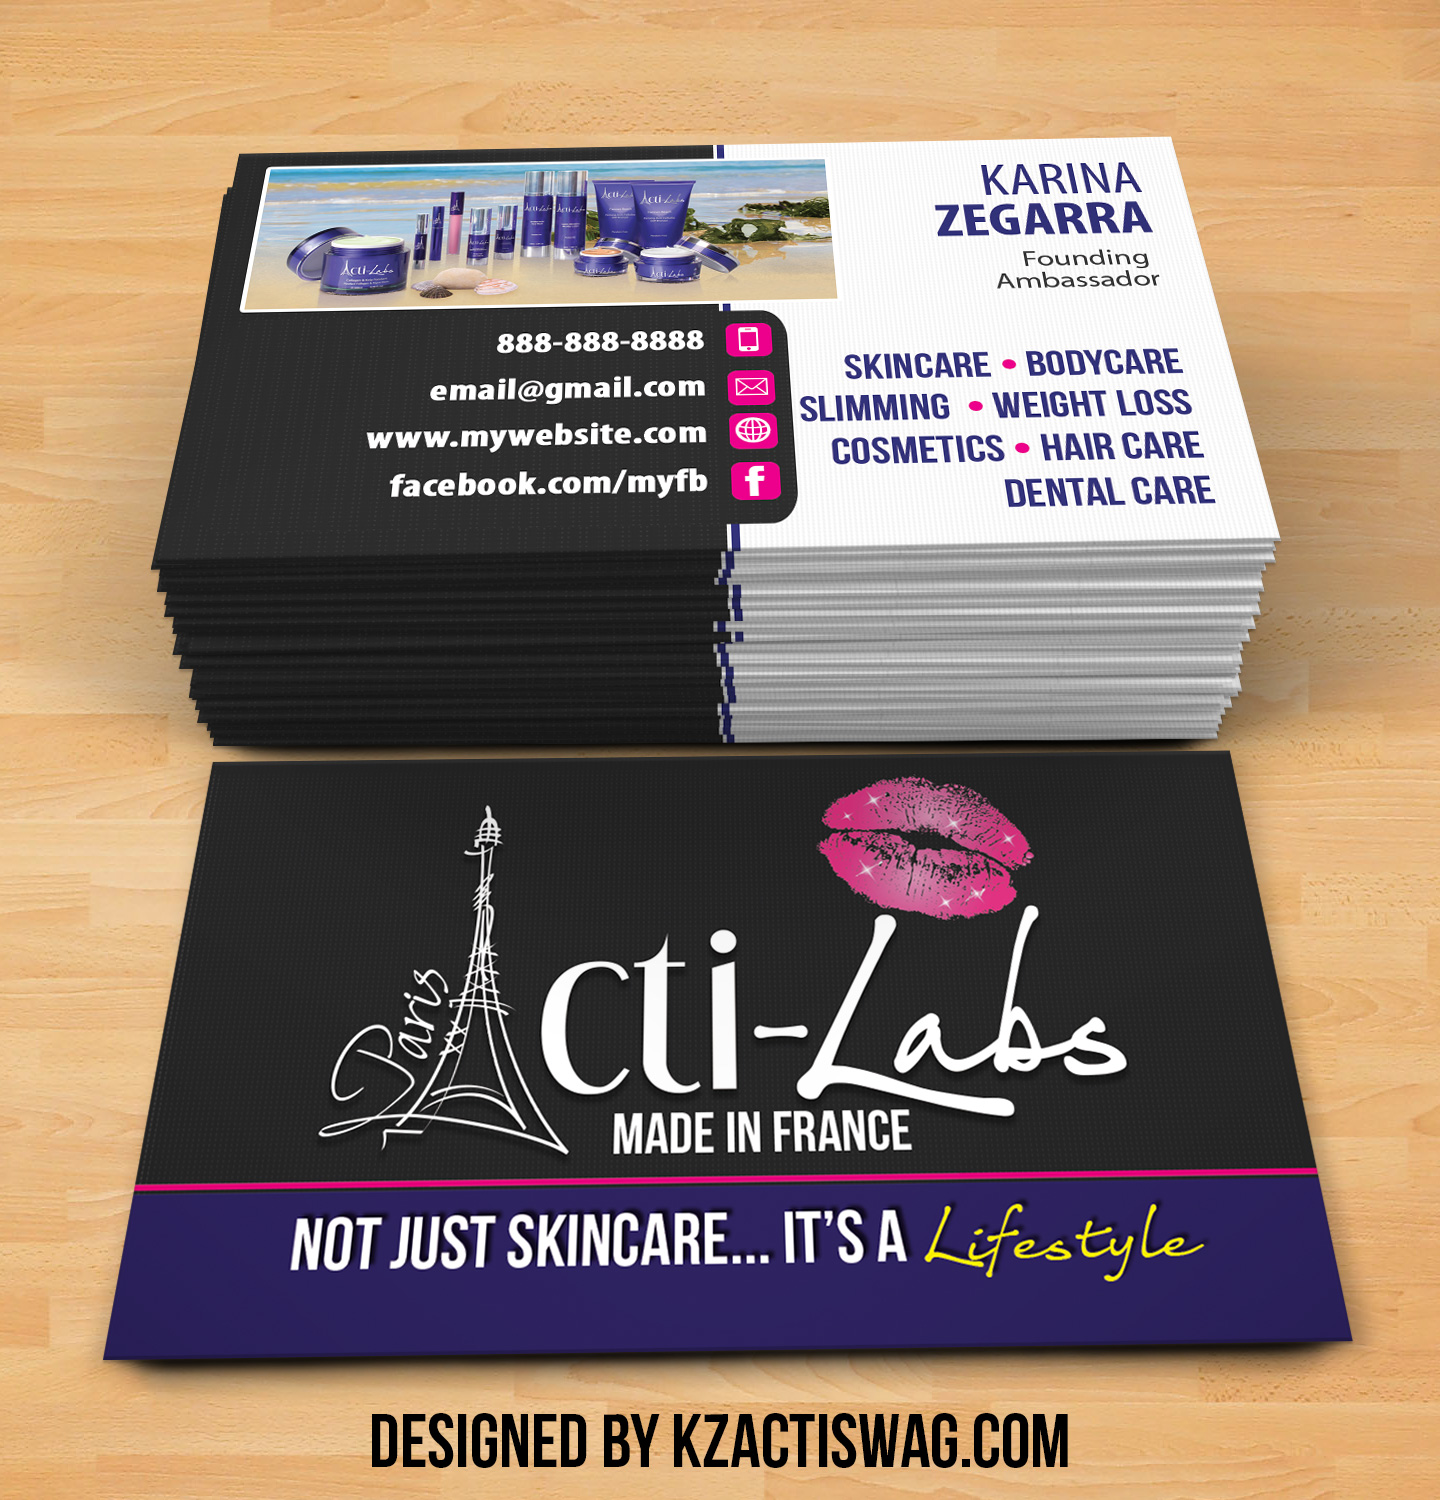 Acti labs business cards 6 kz creative services online store acti labs business cards 6 colourmoves